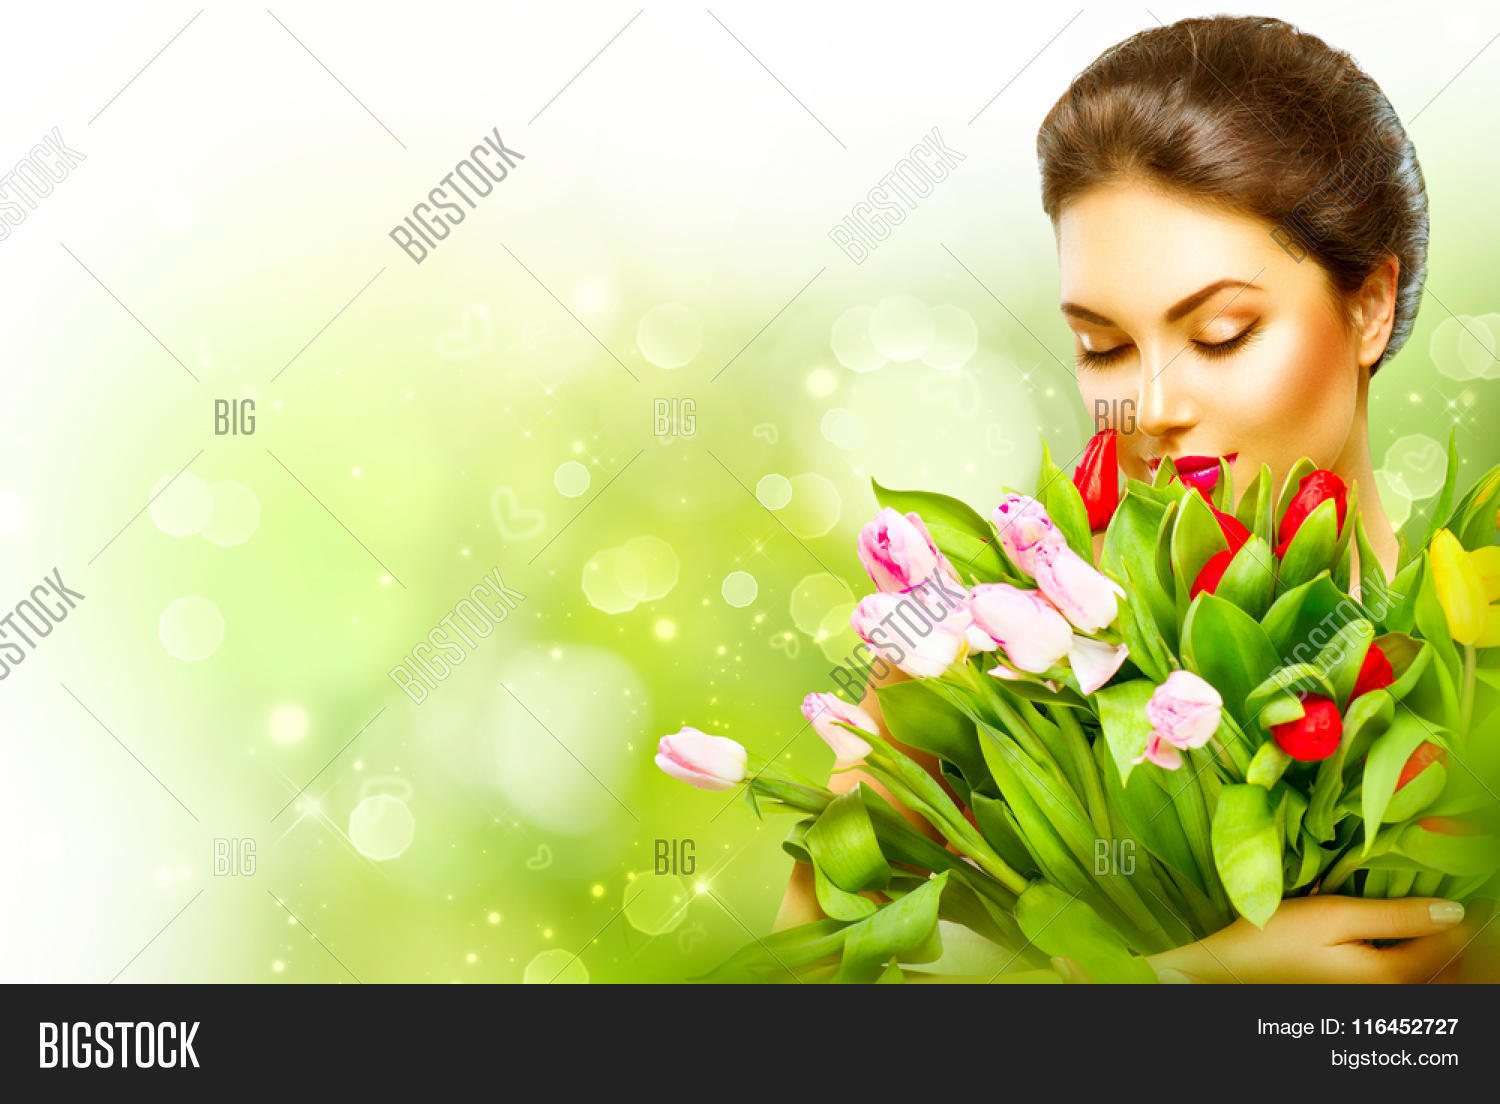 Beautiful girl bouquet image photo free trial bigstock beautiful girl with a bouquet of colorful tulip flowers beauty woman with spring flower bunch izmirmasajfo